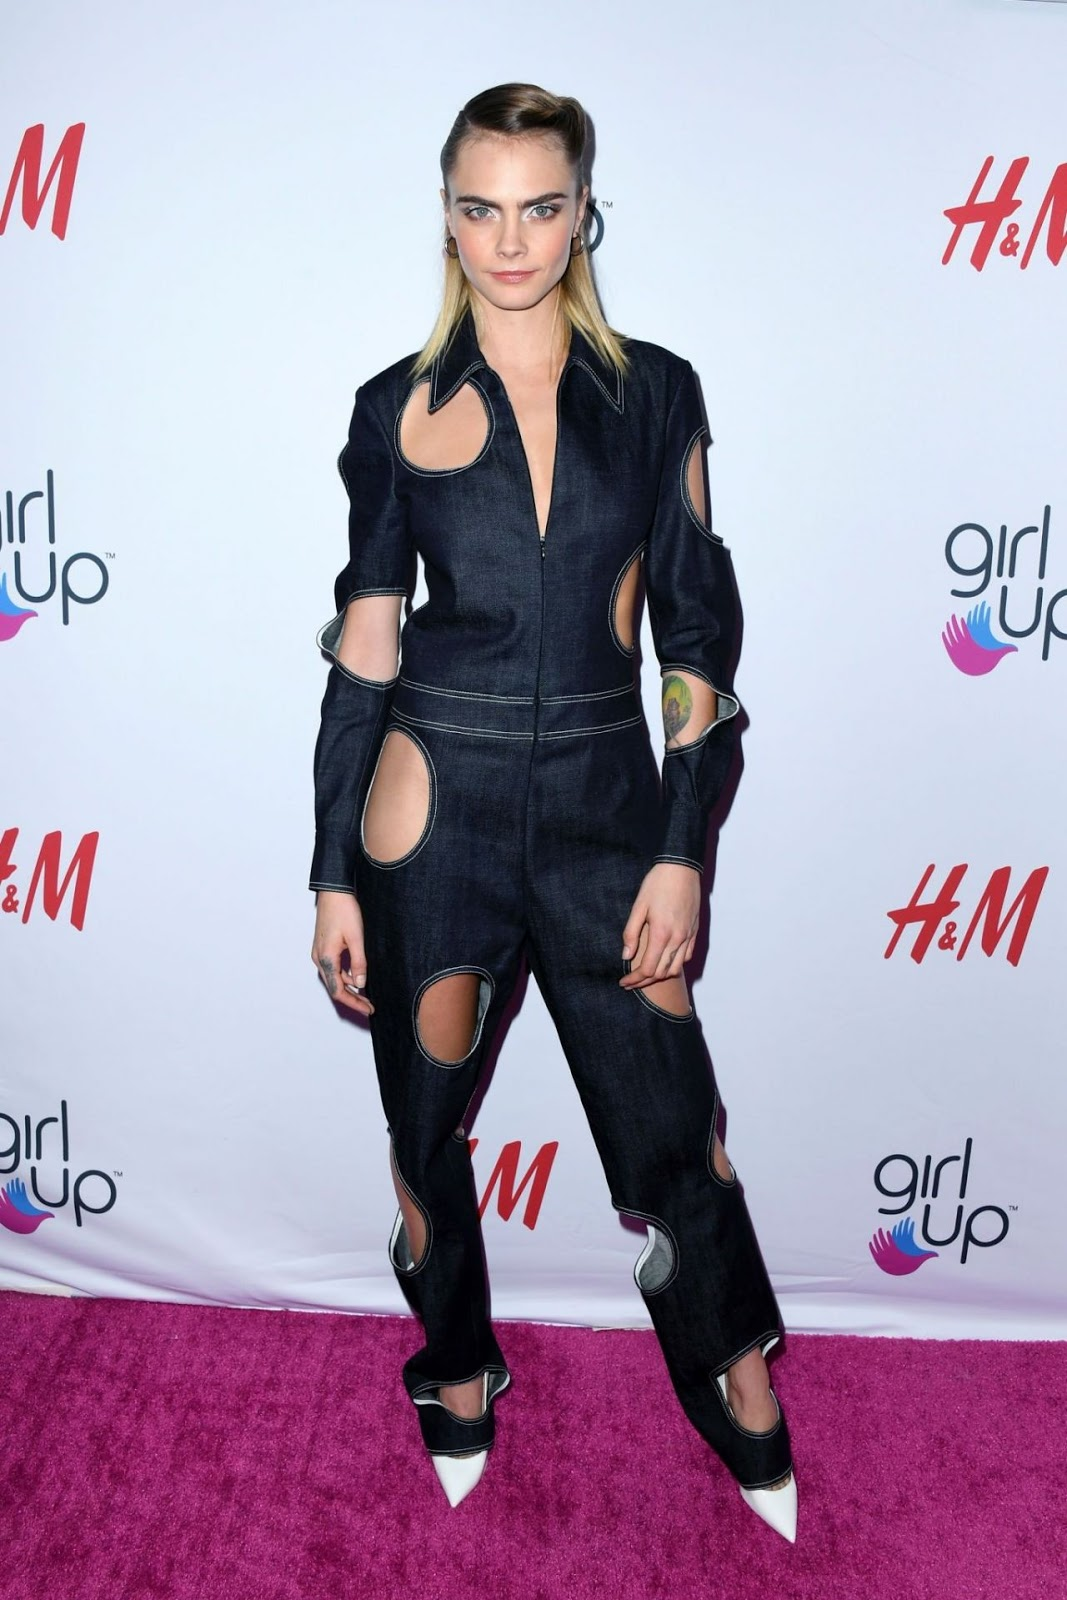 Cara Delevingne makes an eclectic statement at the 2019 Girl Up #GirlHero Awards